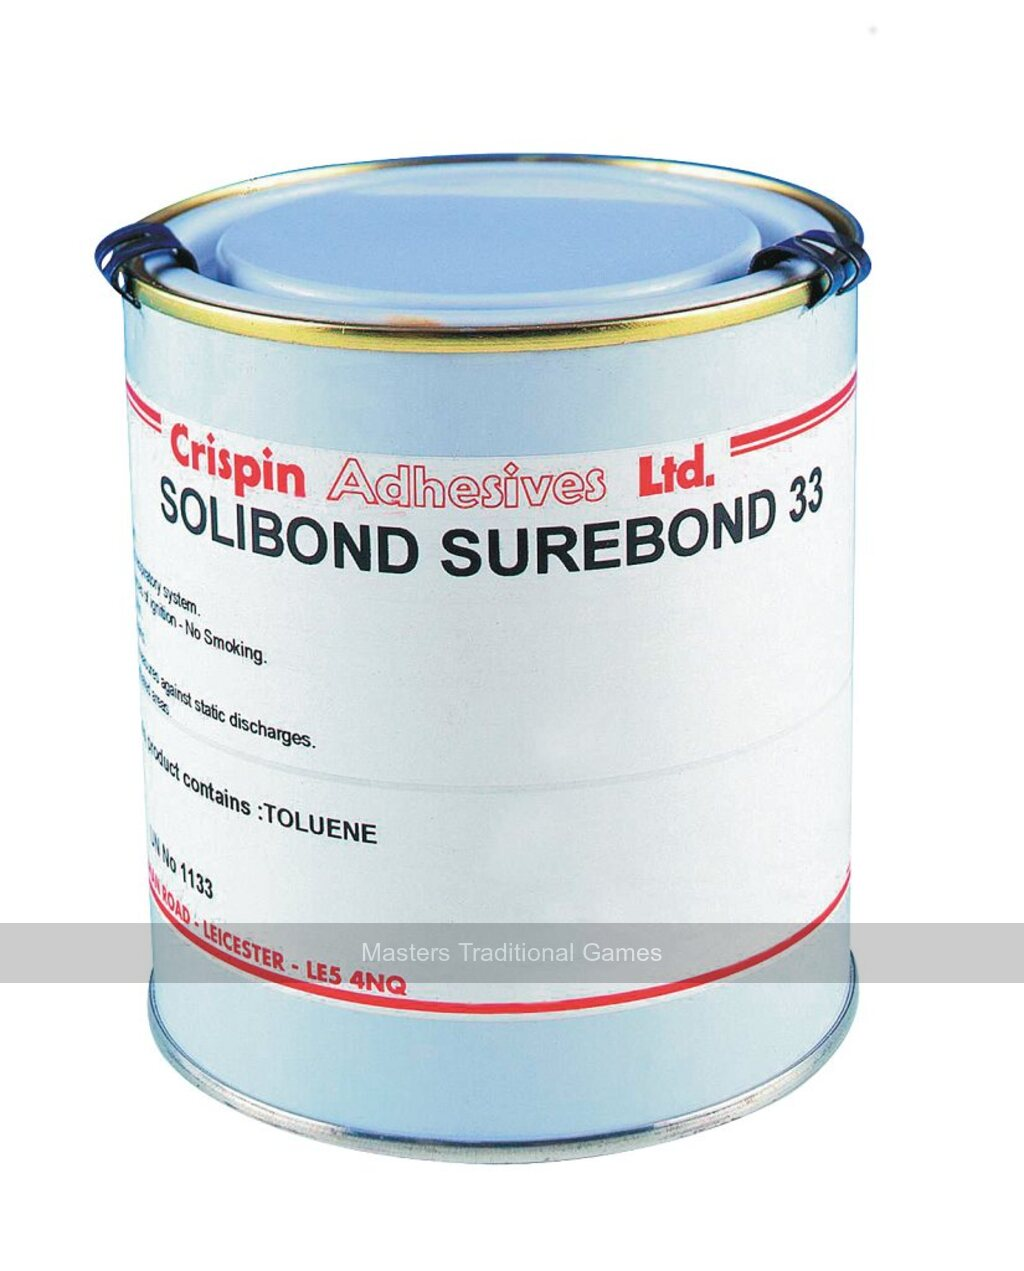 Billiards, Snooker & Pool Table Cushion Rubber Adhesive